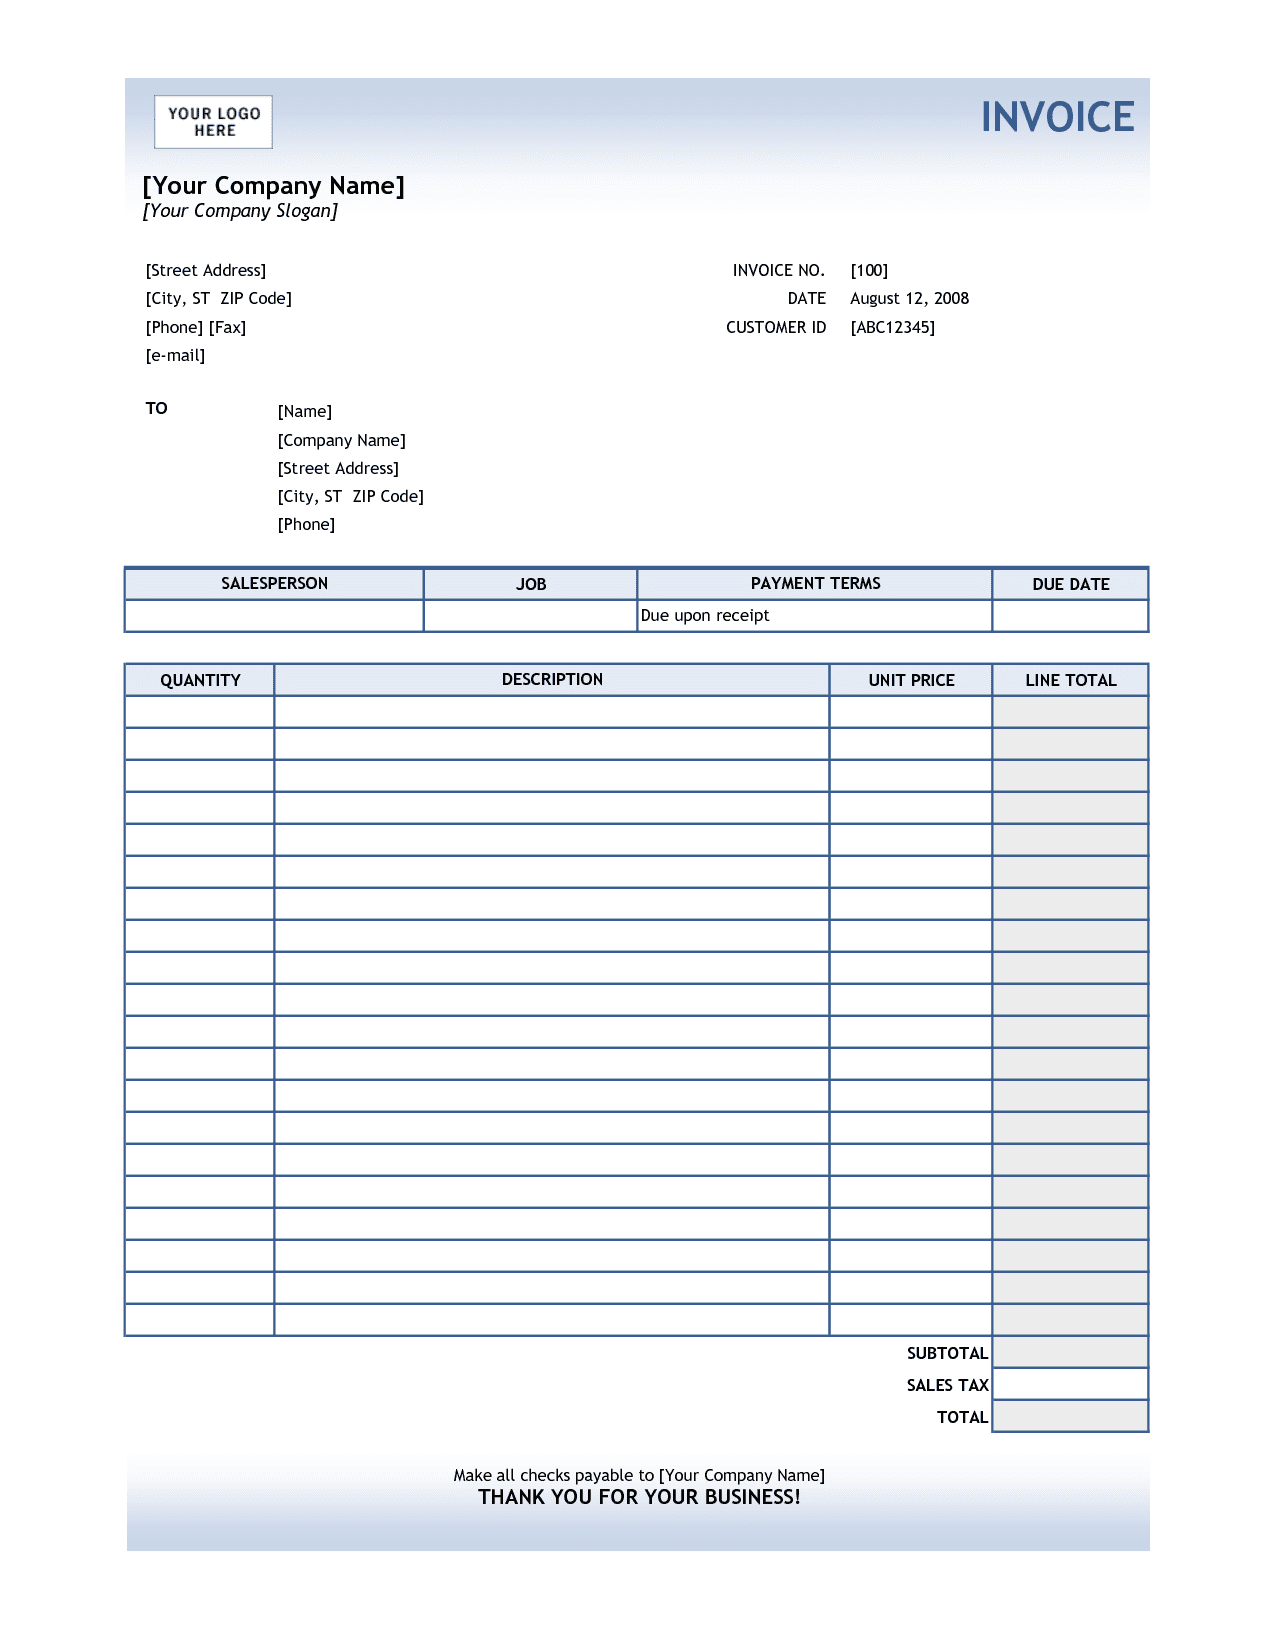 Microsoft Excel Receipt Template